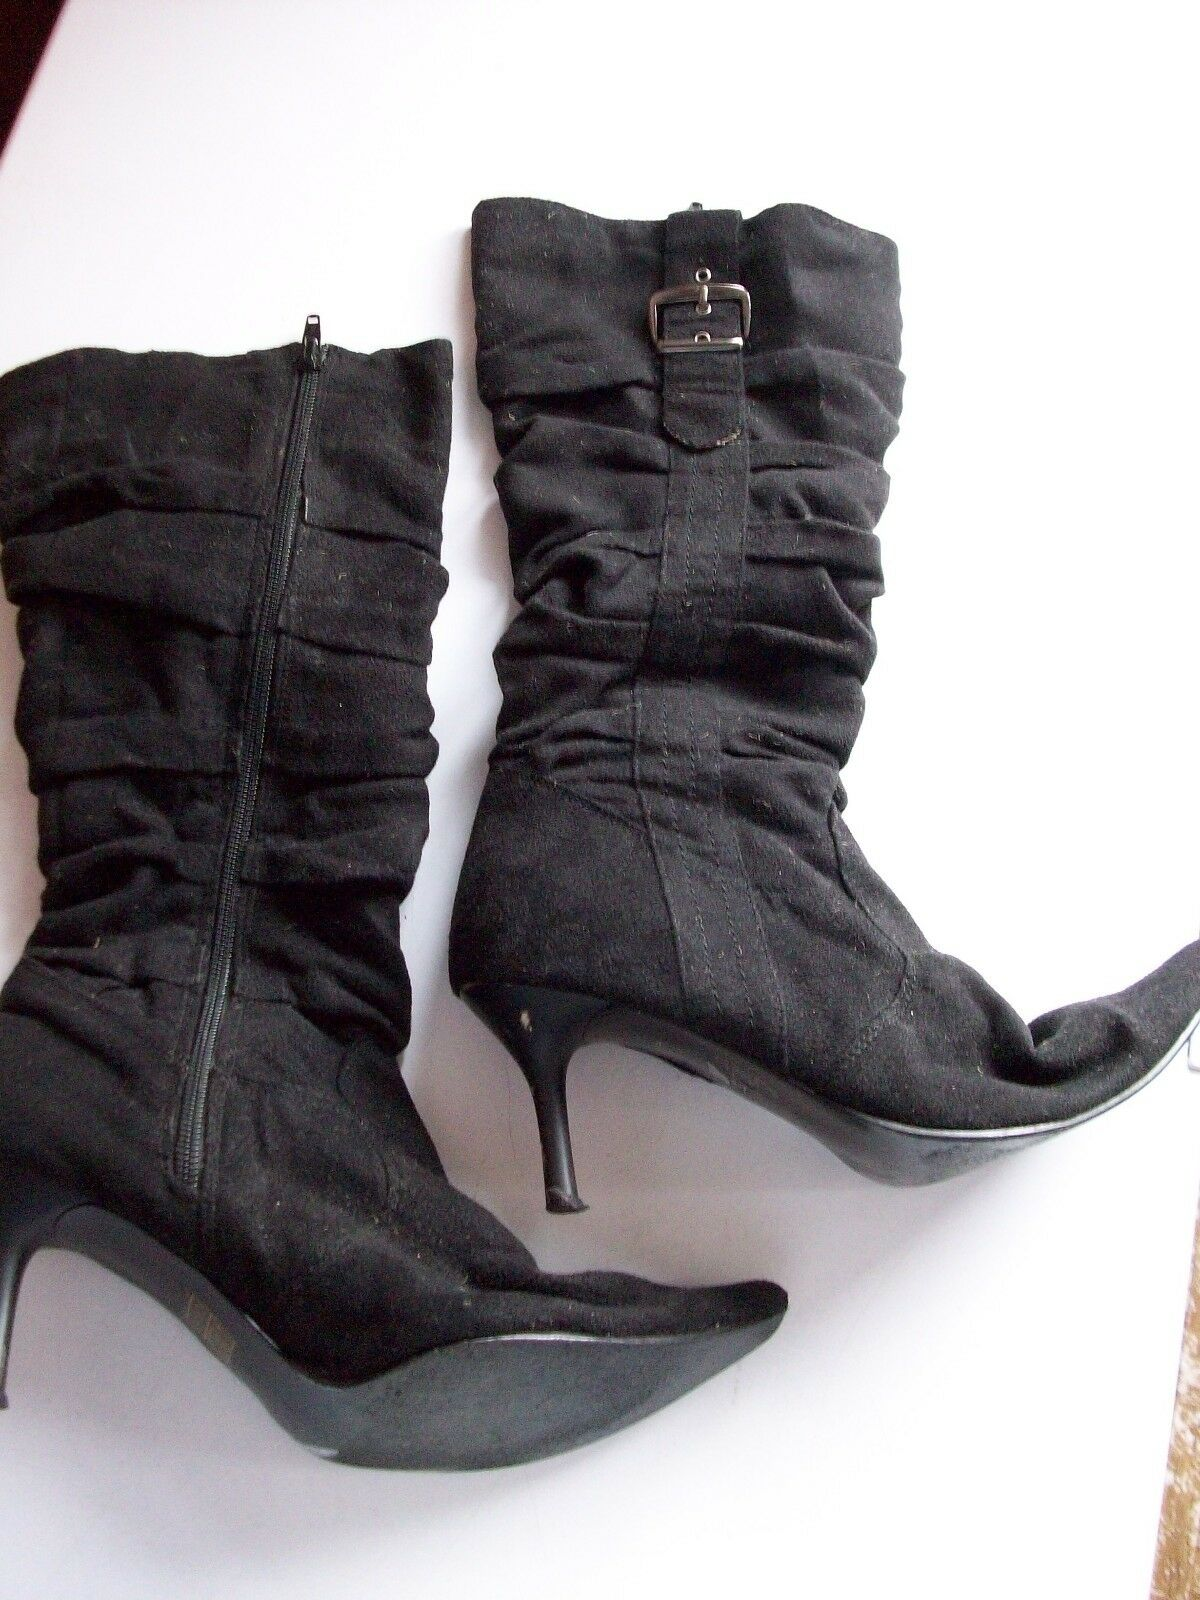 X'ite BLACK SUEDE LOOK RUCHED ZIP STILETTO BOOTS UK6 NARROW **GC**